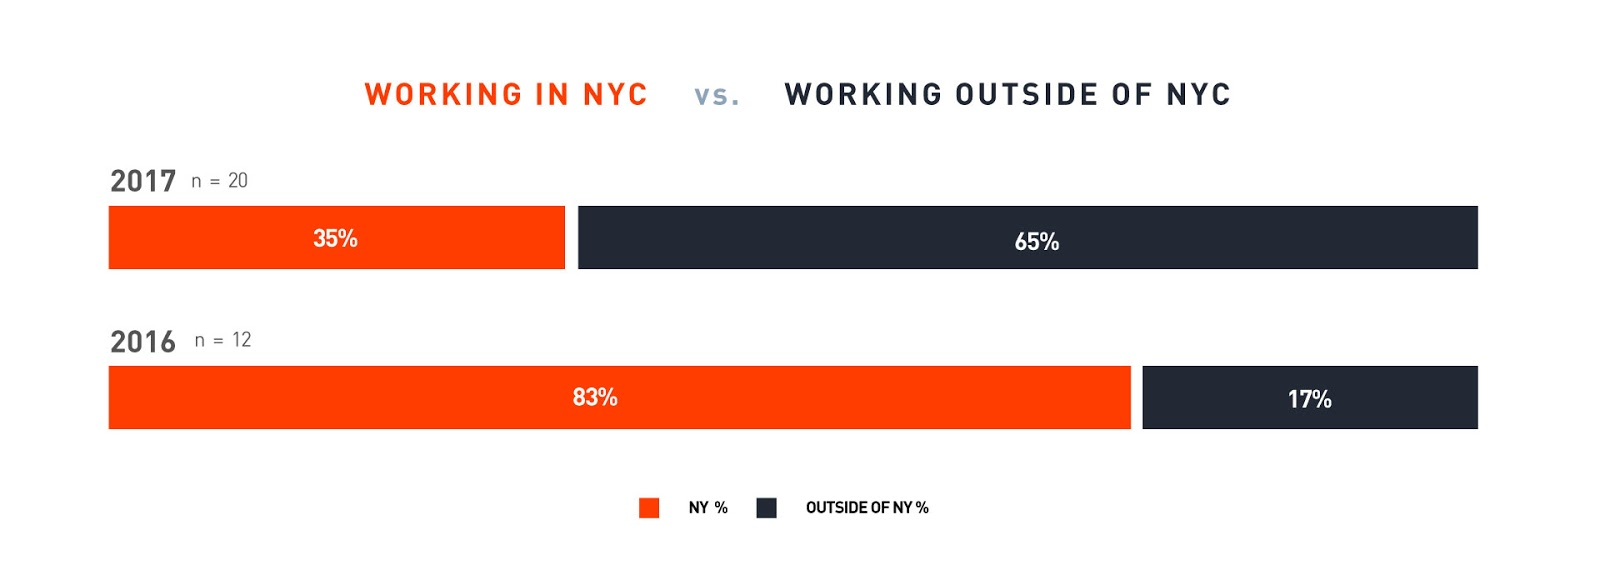 Bar-graph, paths of working-location of recent graduates (2016-2017). (2016) 83% worked in NYC and 17% worked elsewhere. (2017) 35% worked in NYC and 65% worked elsewhere.